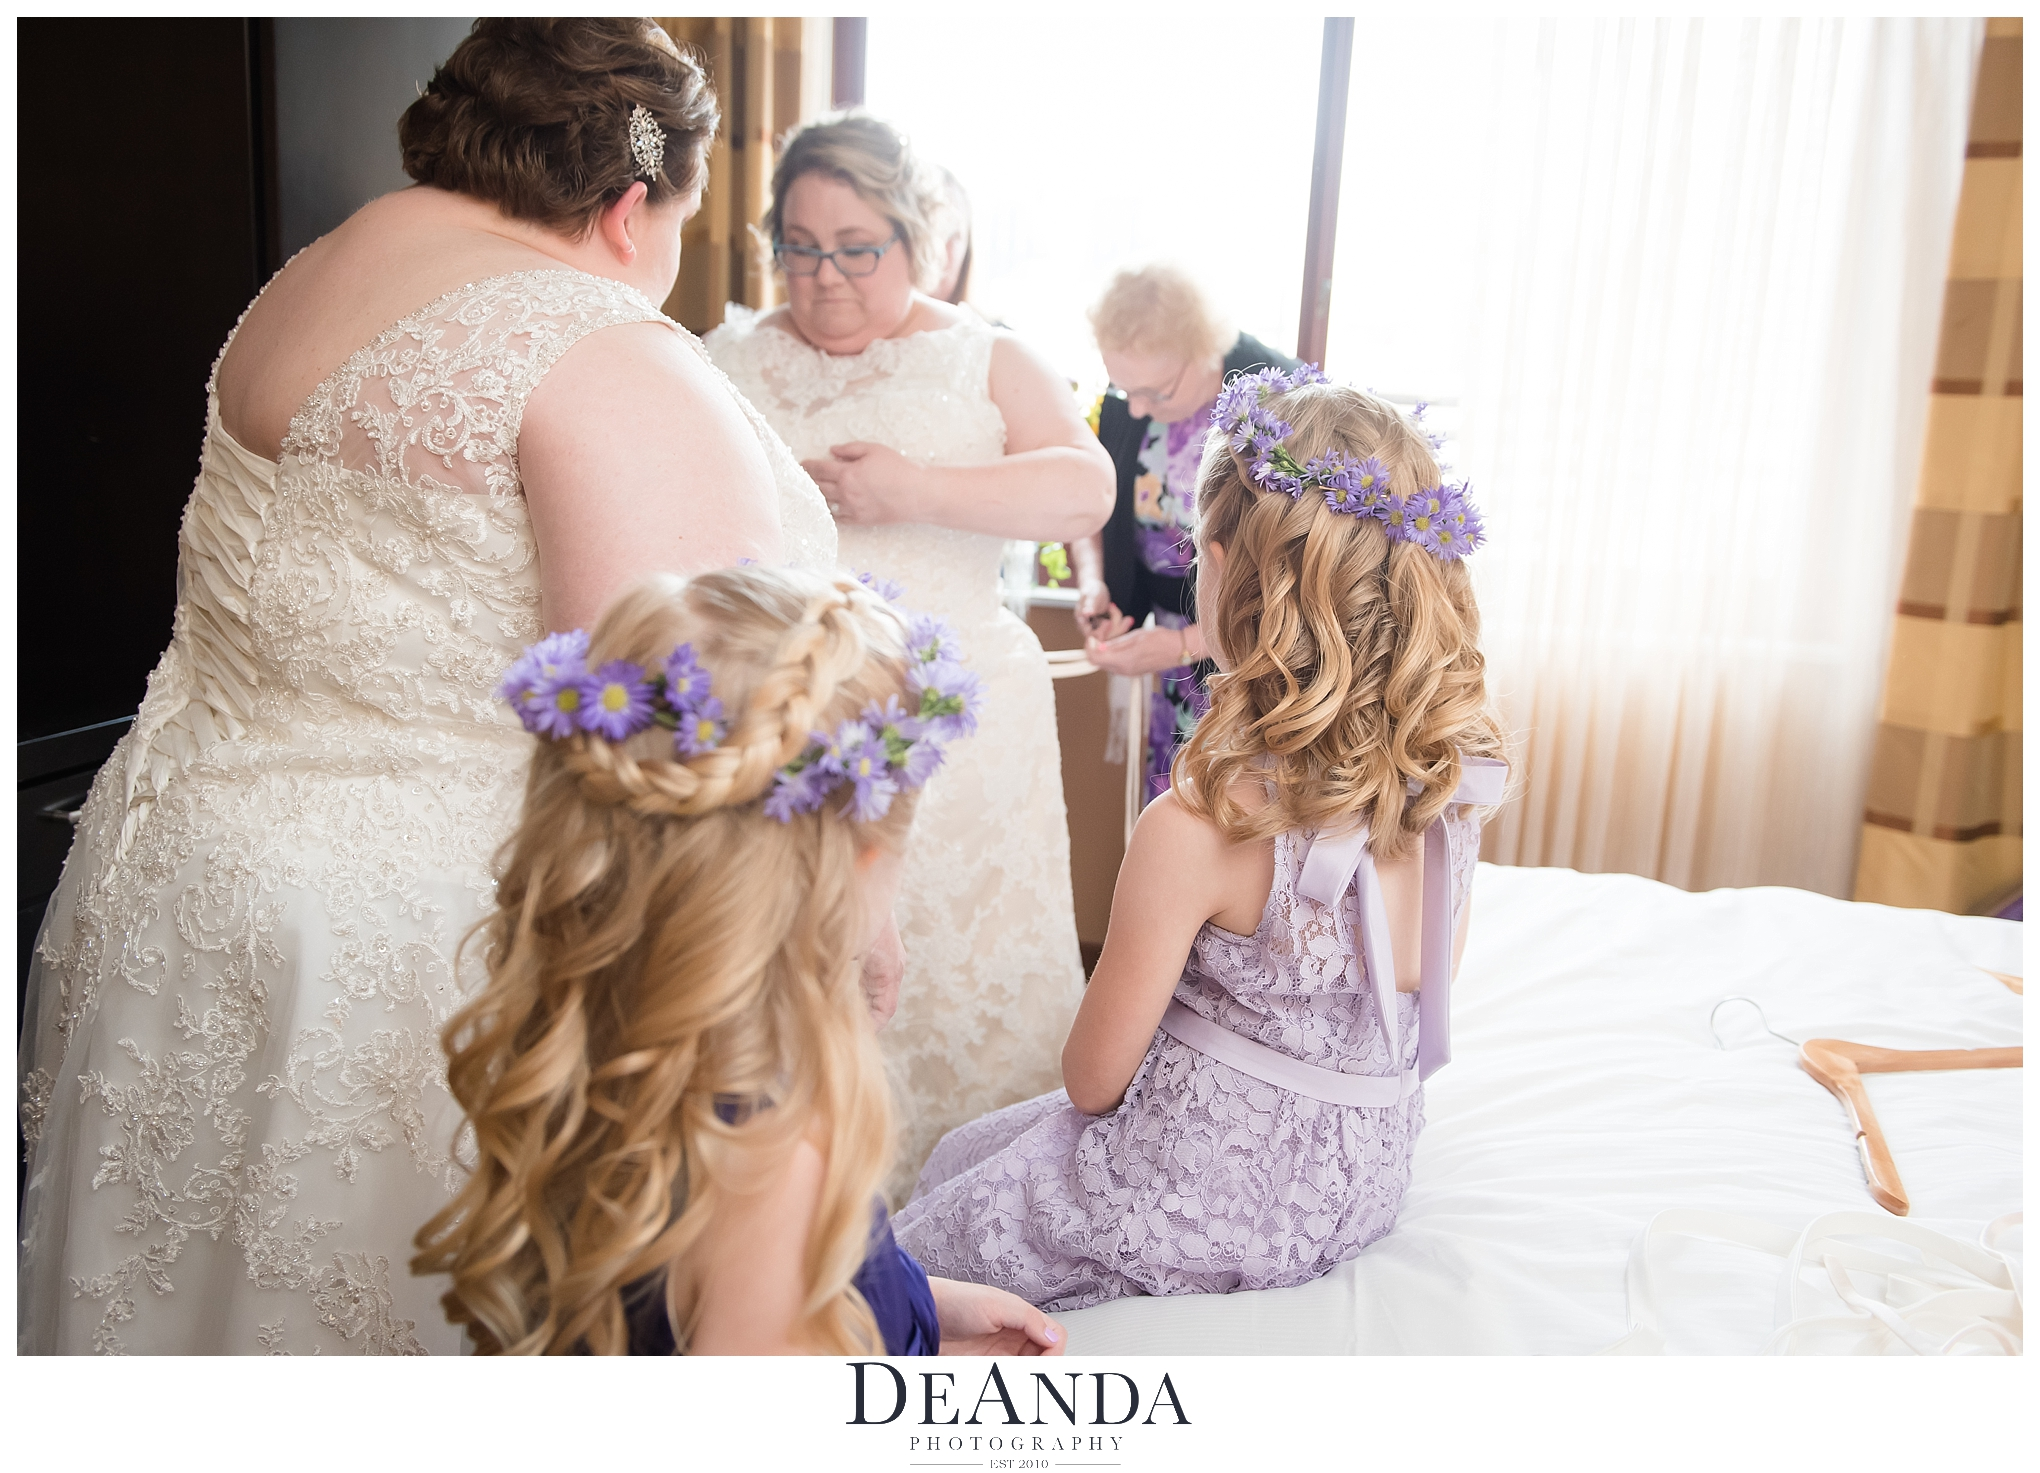 two brides getting ready for their wedding